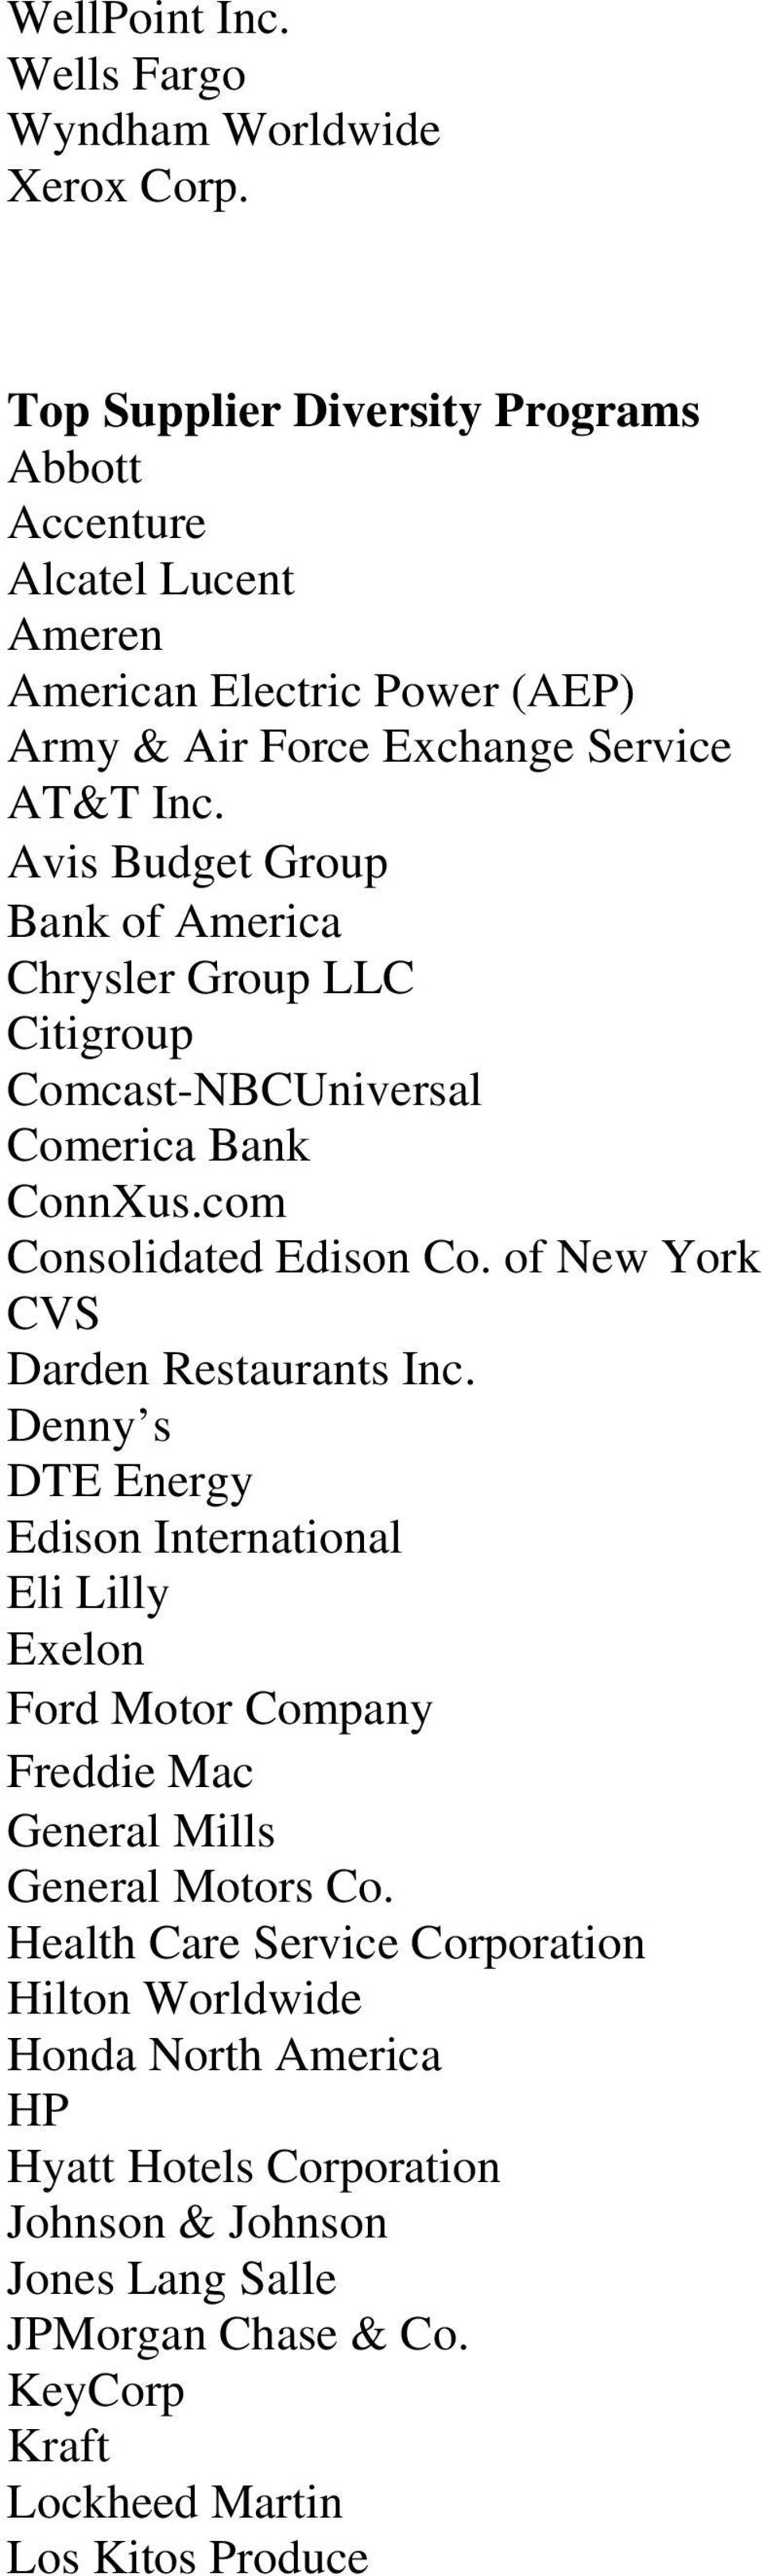 Avis Budget Group Bank of America Chrysler Group LLC Citigroup Comcast-NBCUniversal Comerica Bank ConnXus.com Consolidated Edison Co. of New York CVS Darden Restaurants Inc.